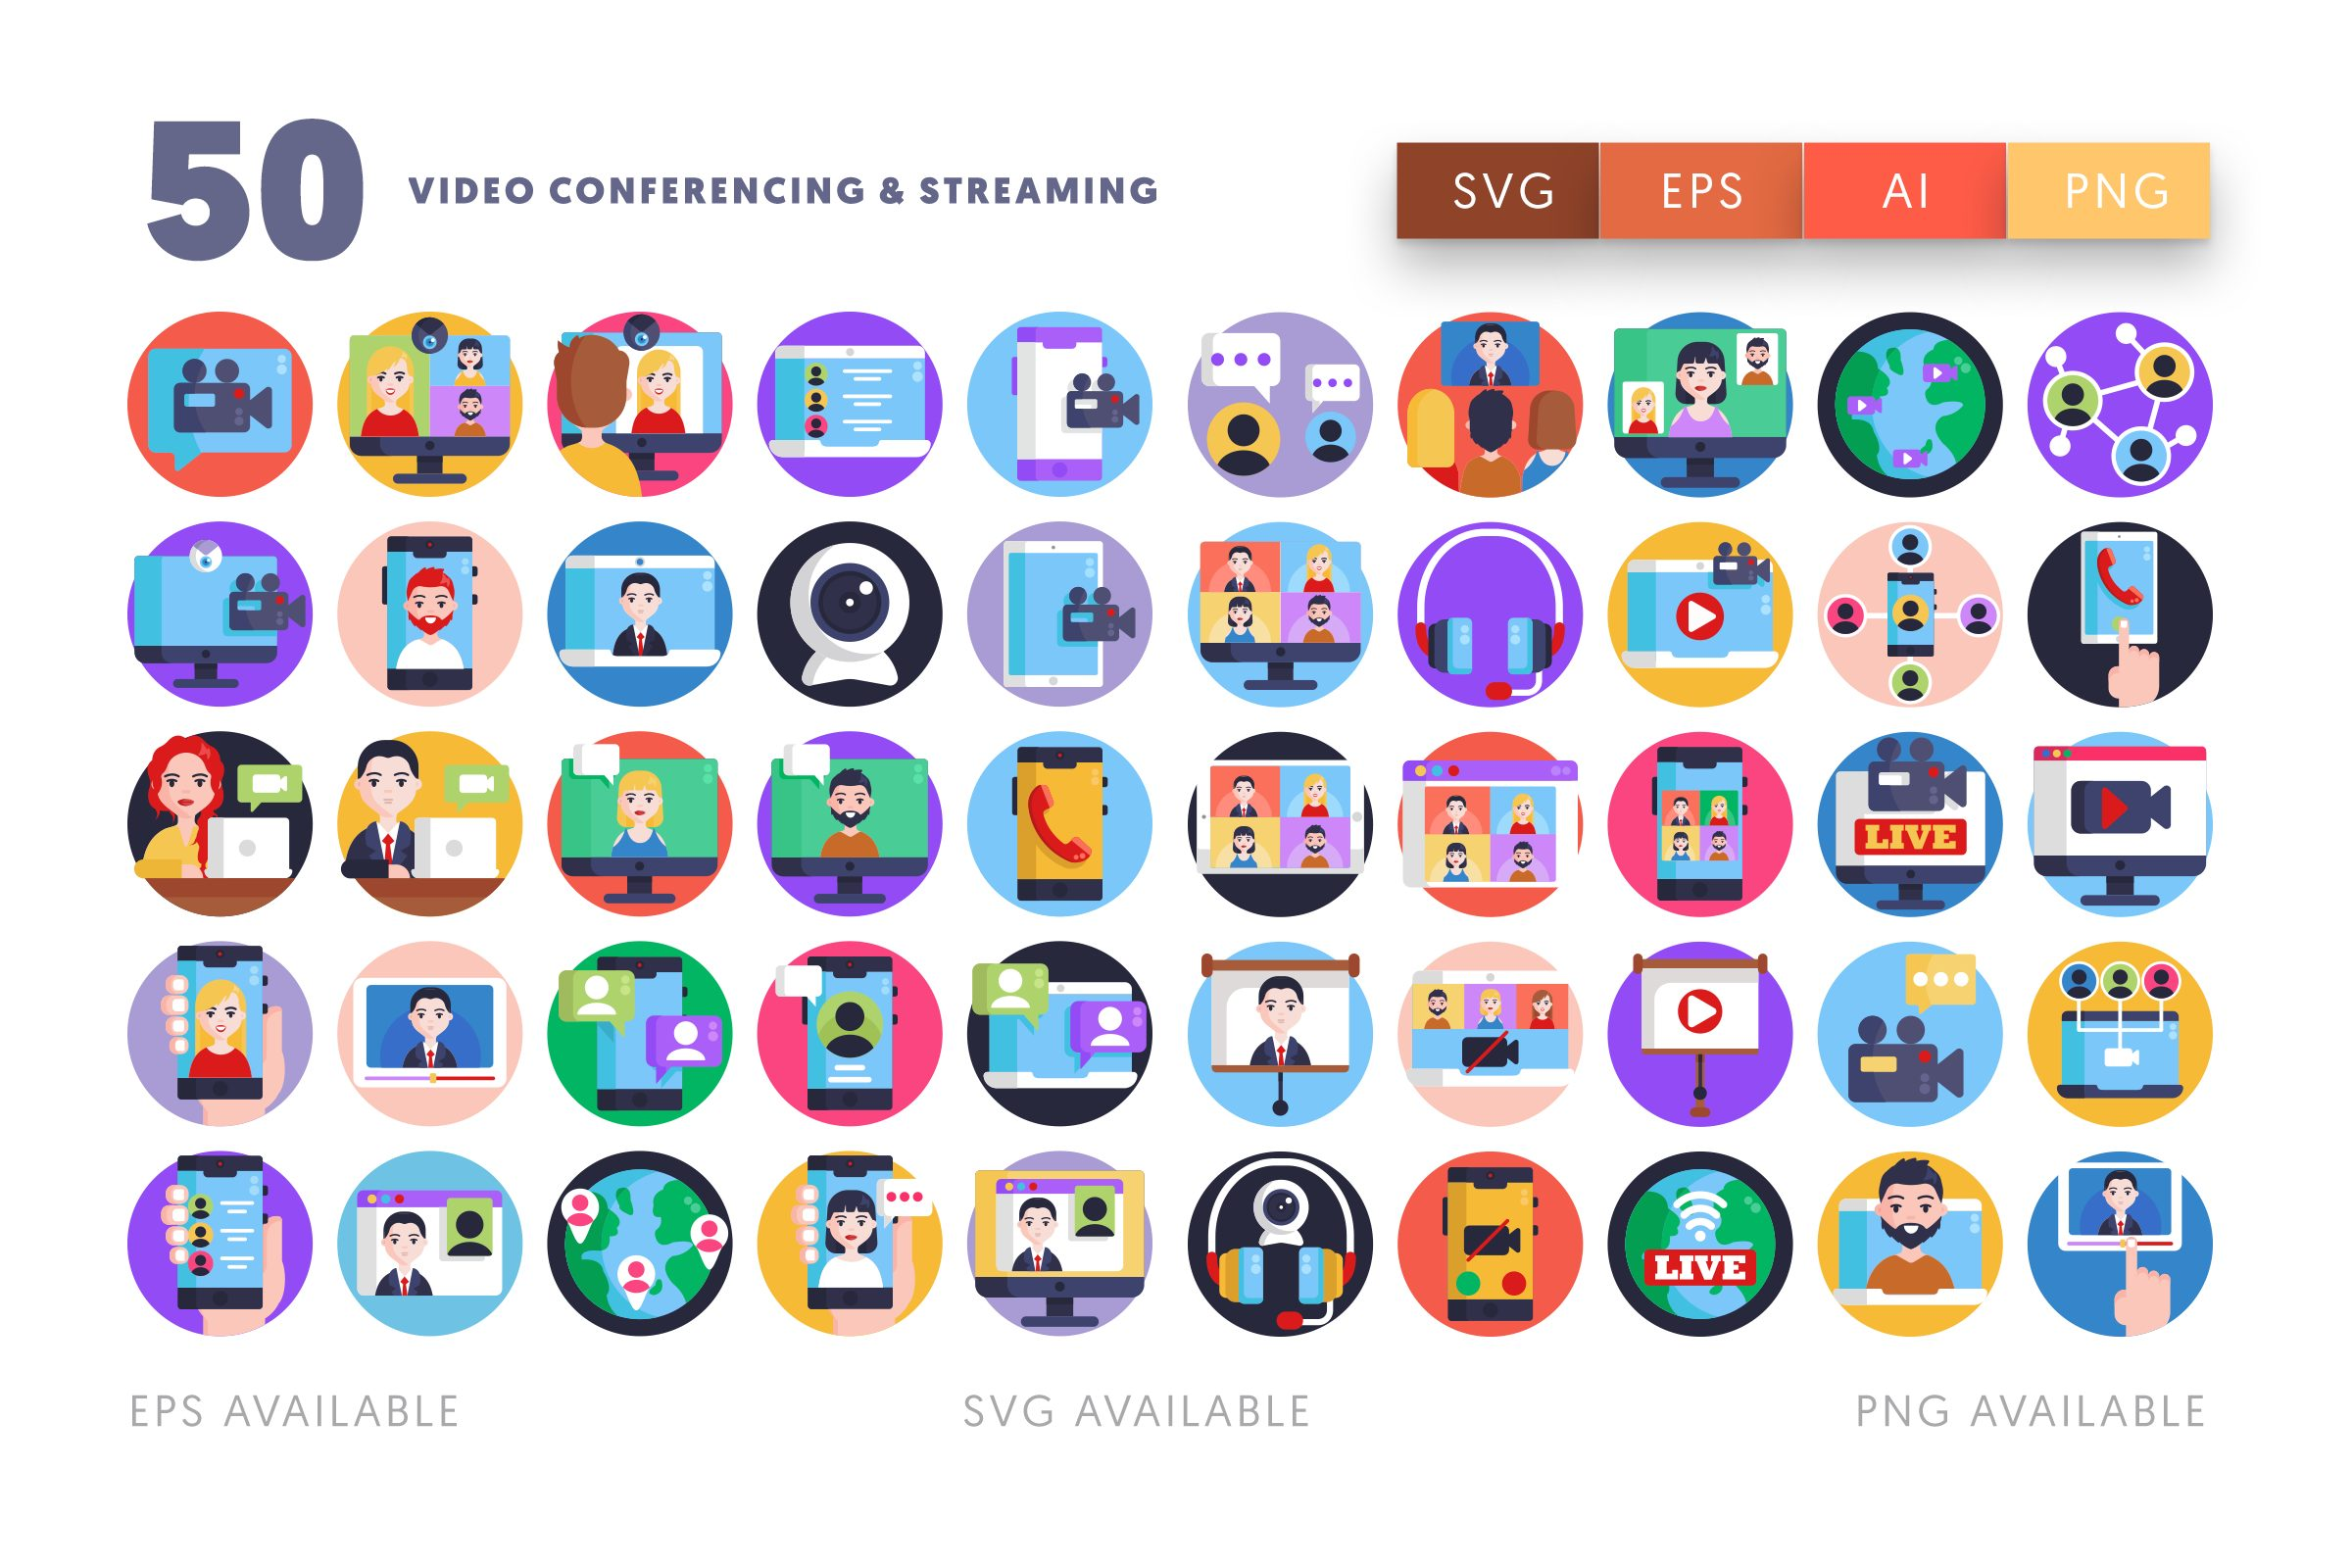 Video Conference & Streaming icons png/svg/eps